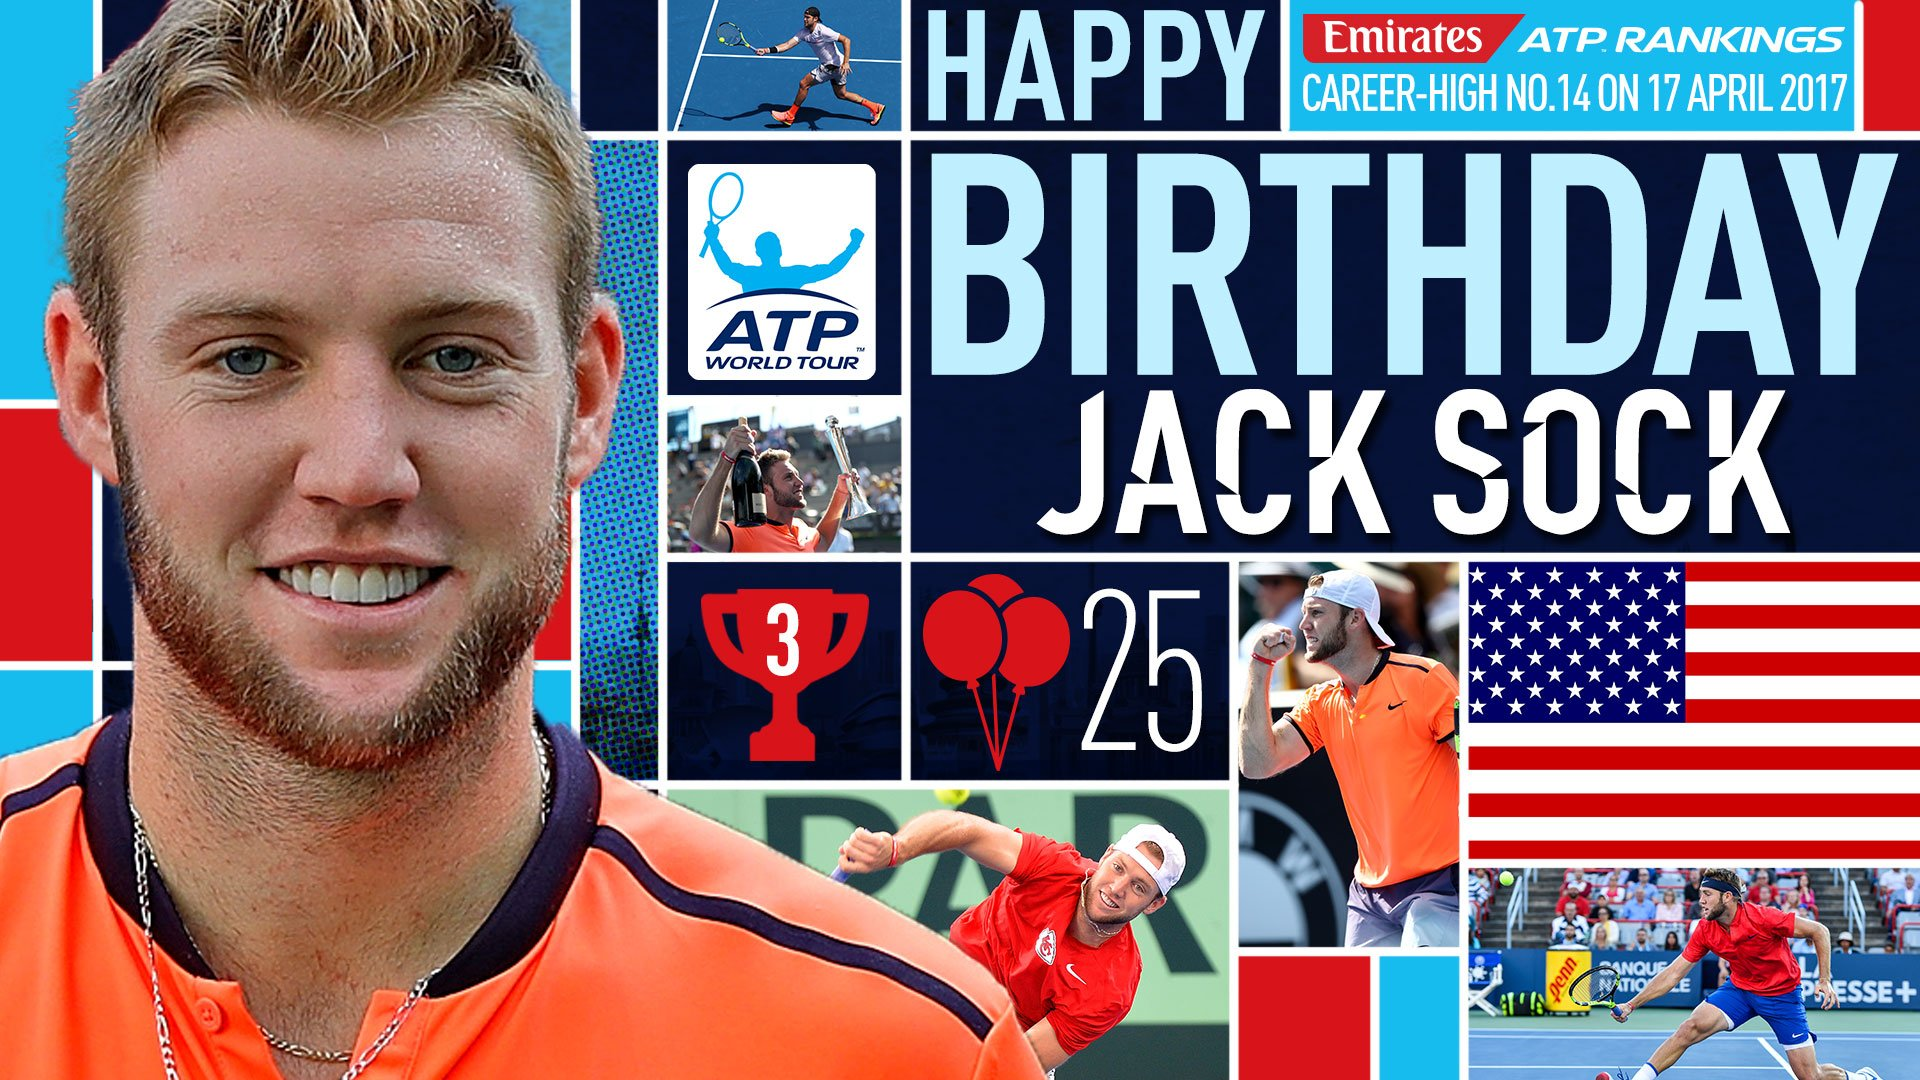 �� time for @JackSock! The ���� turns 25 today. Happy birthday, Jack!  Profile ➡️ https://t.co/gQcW0giU6F https://t.co/g0xEDGXYyi